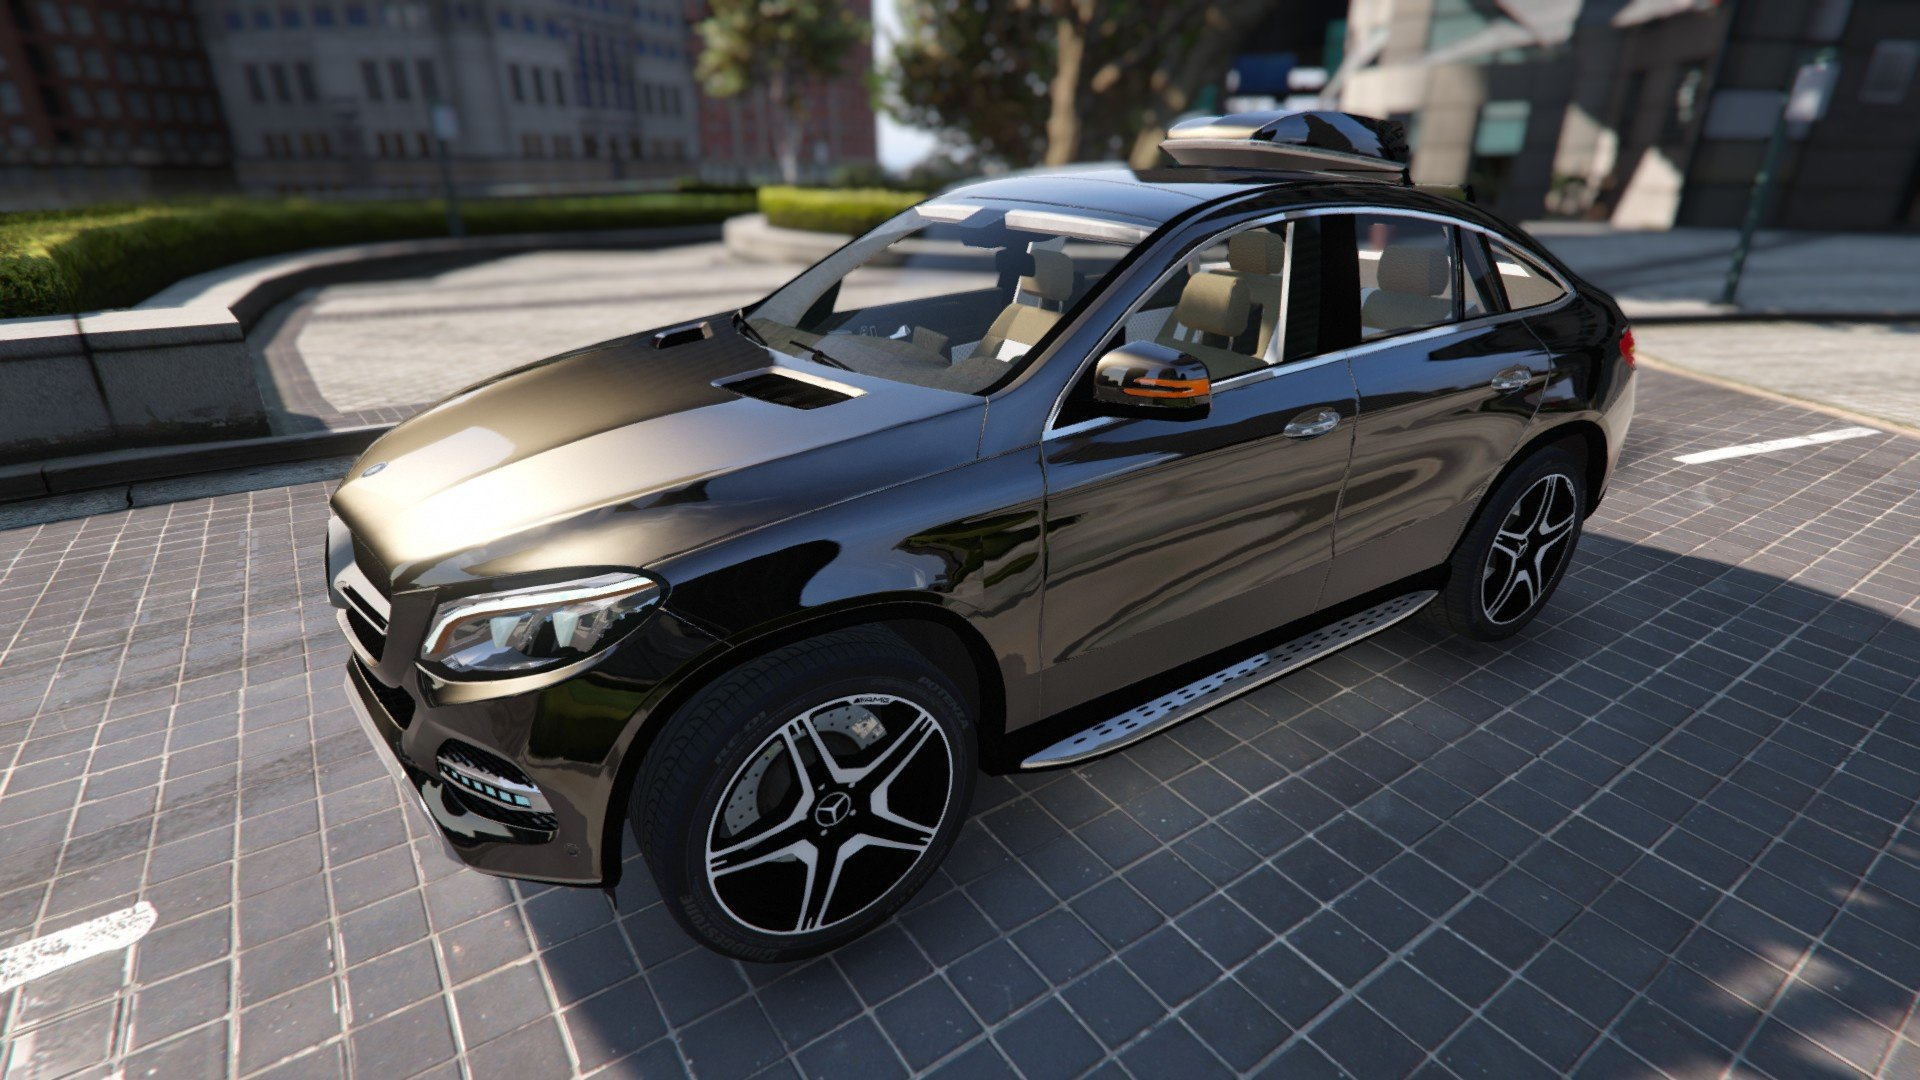 Mercedes benz gle 450 4matic c292 gta5 for Mercedes benz gle 450